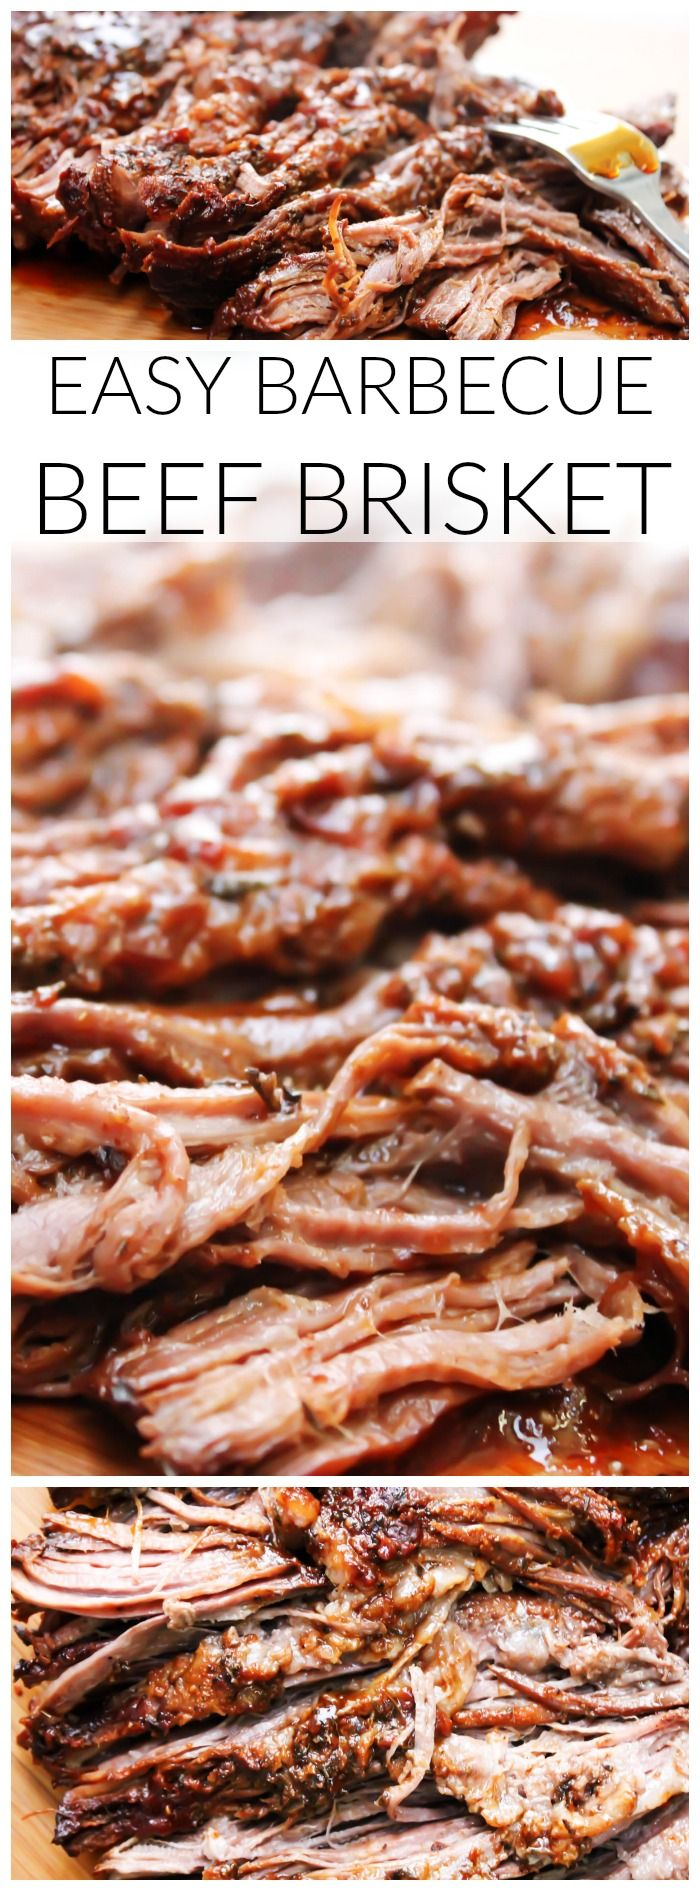 Easy Barbecue Brisket {Slow Cooker Recipe}